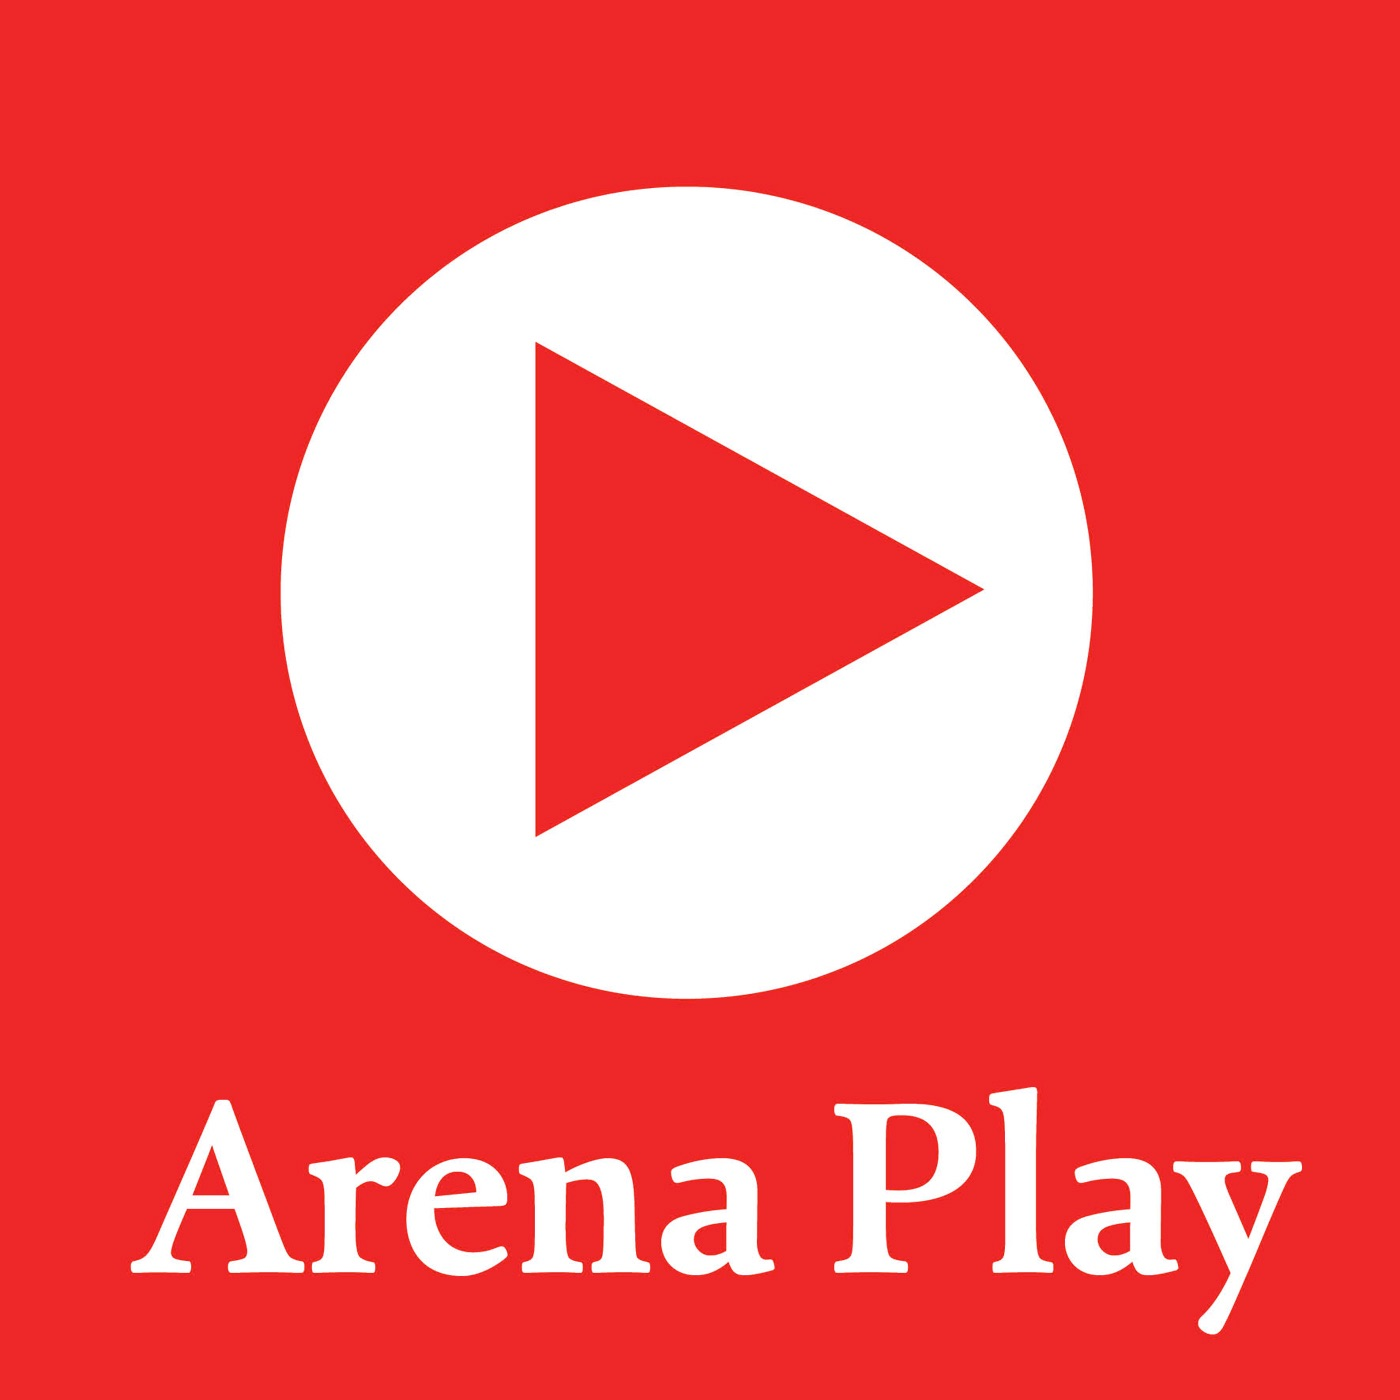 arenaplay